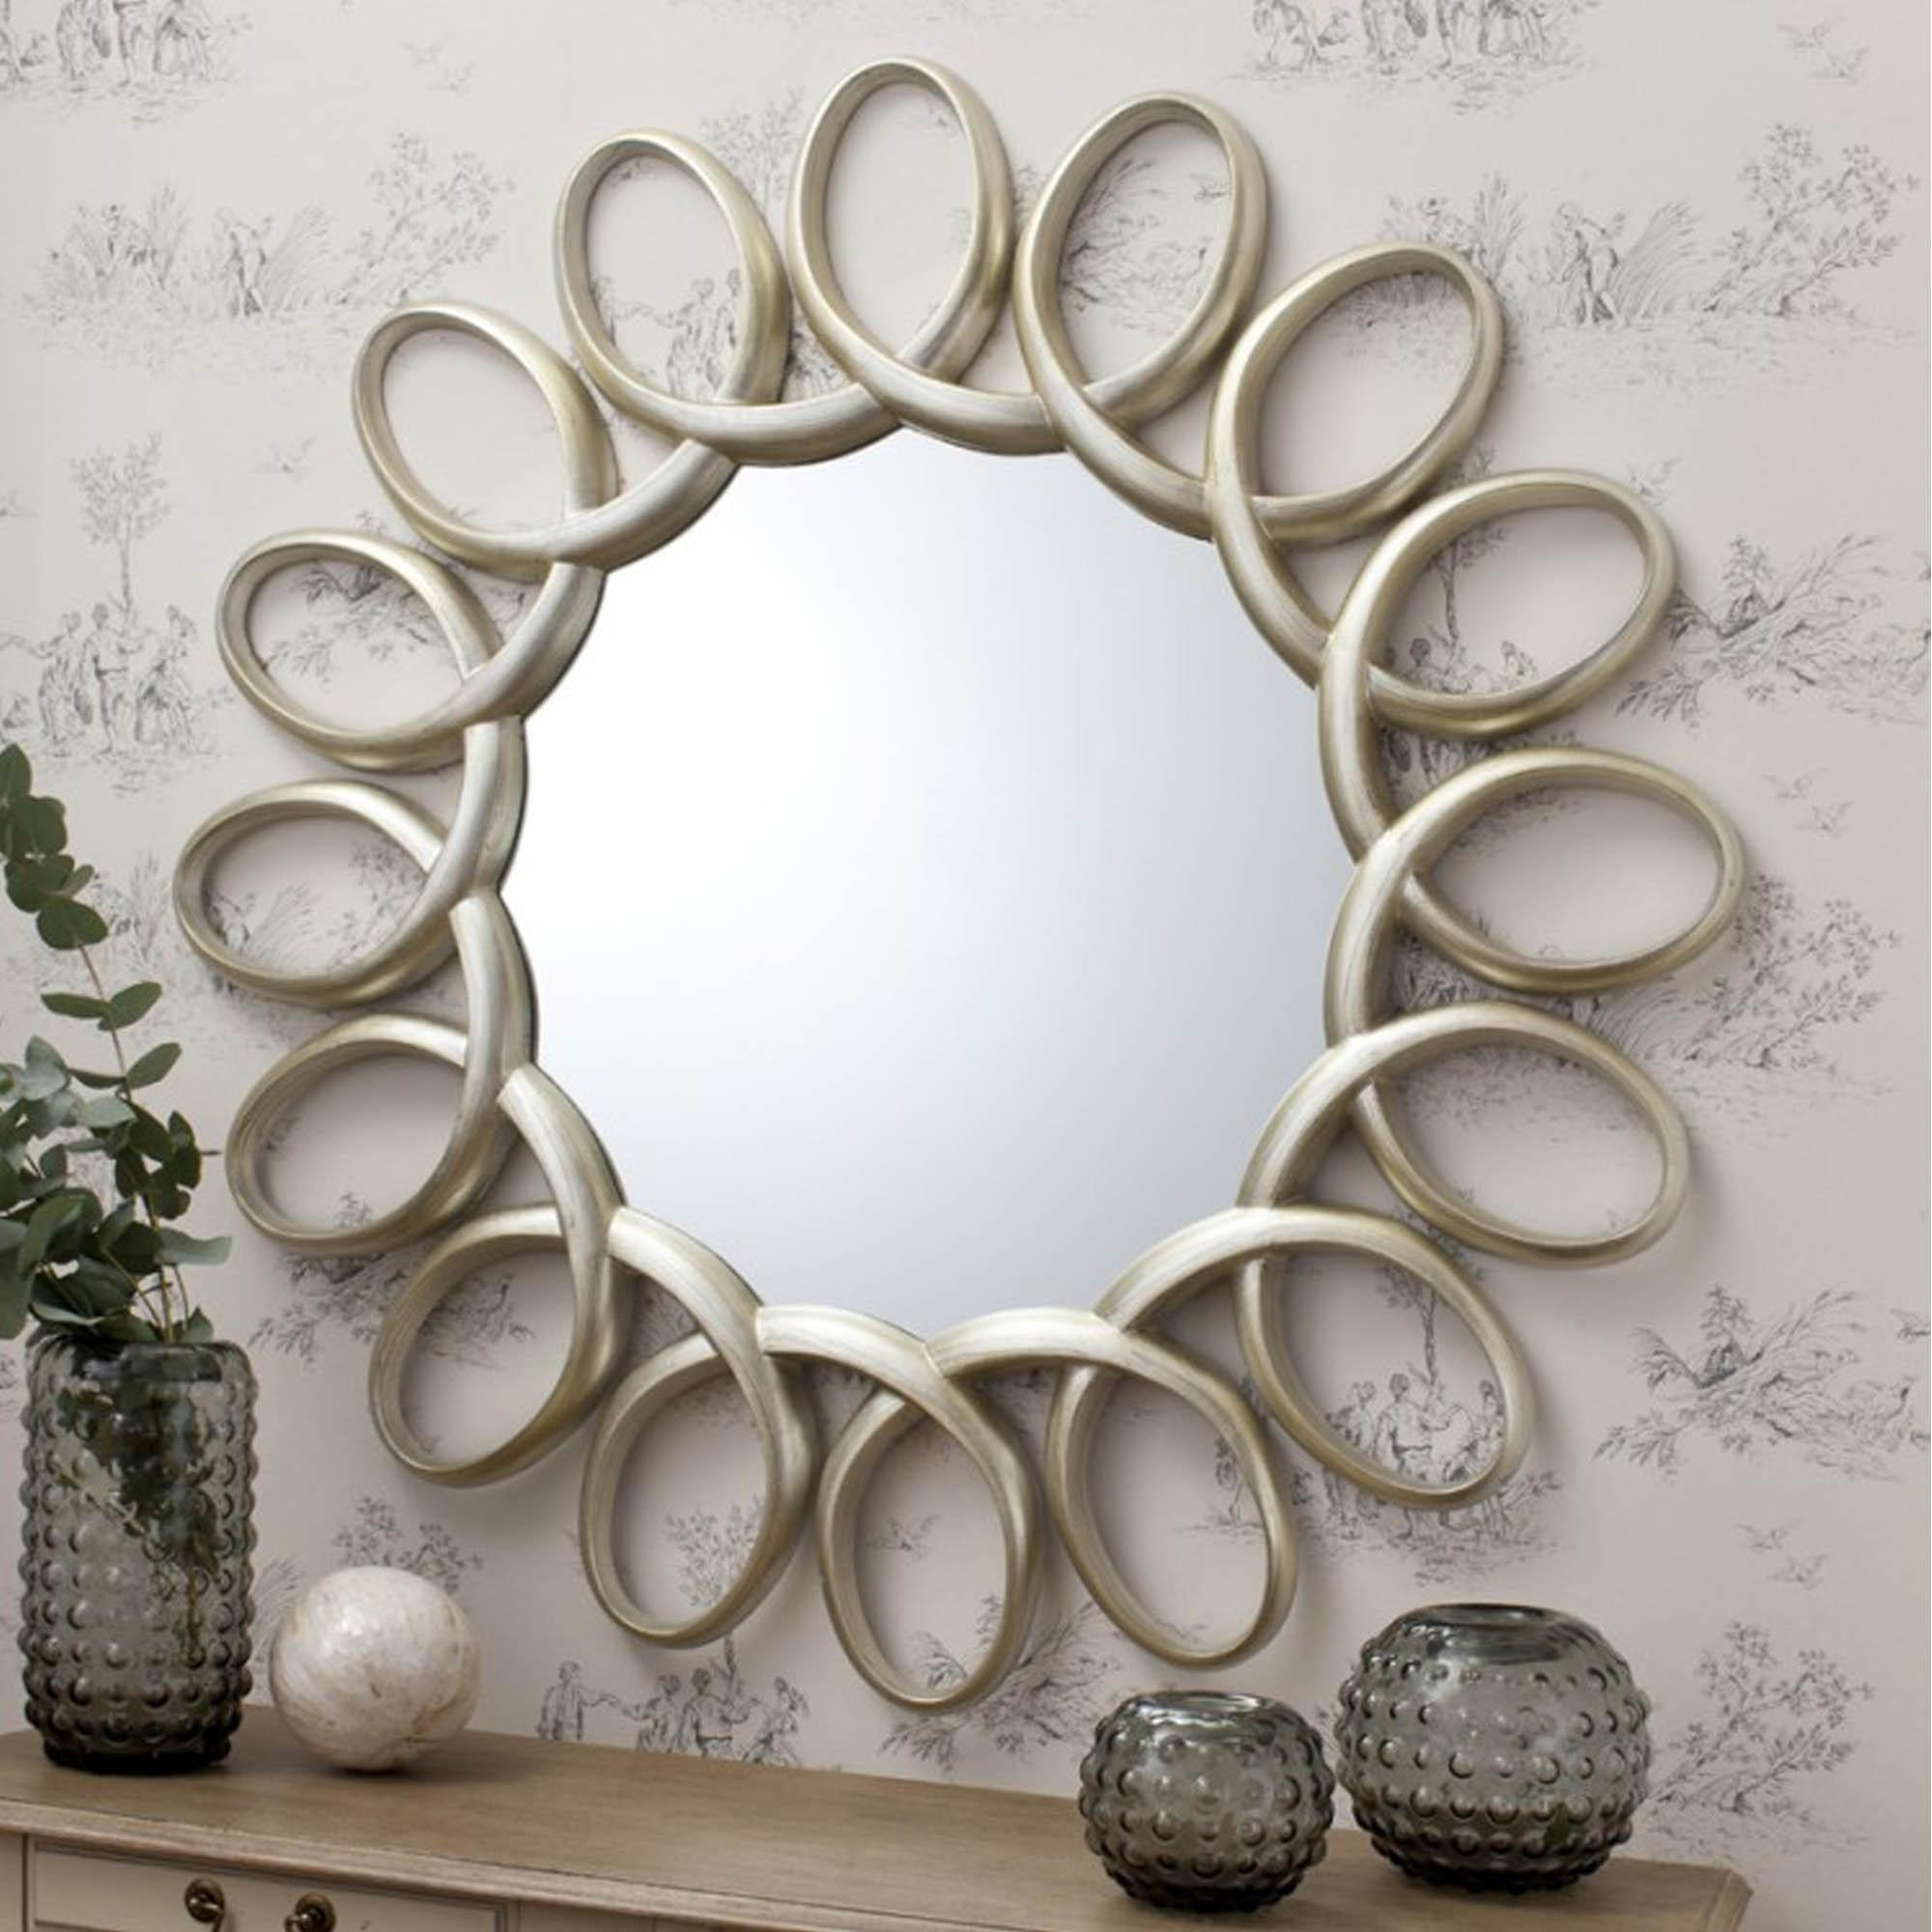 Uncategorized : Brass Mirror Decorative Wall Mirrors For Bedroom In Decorative Round Mirrors (Image 20 of 20)